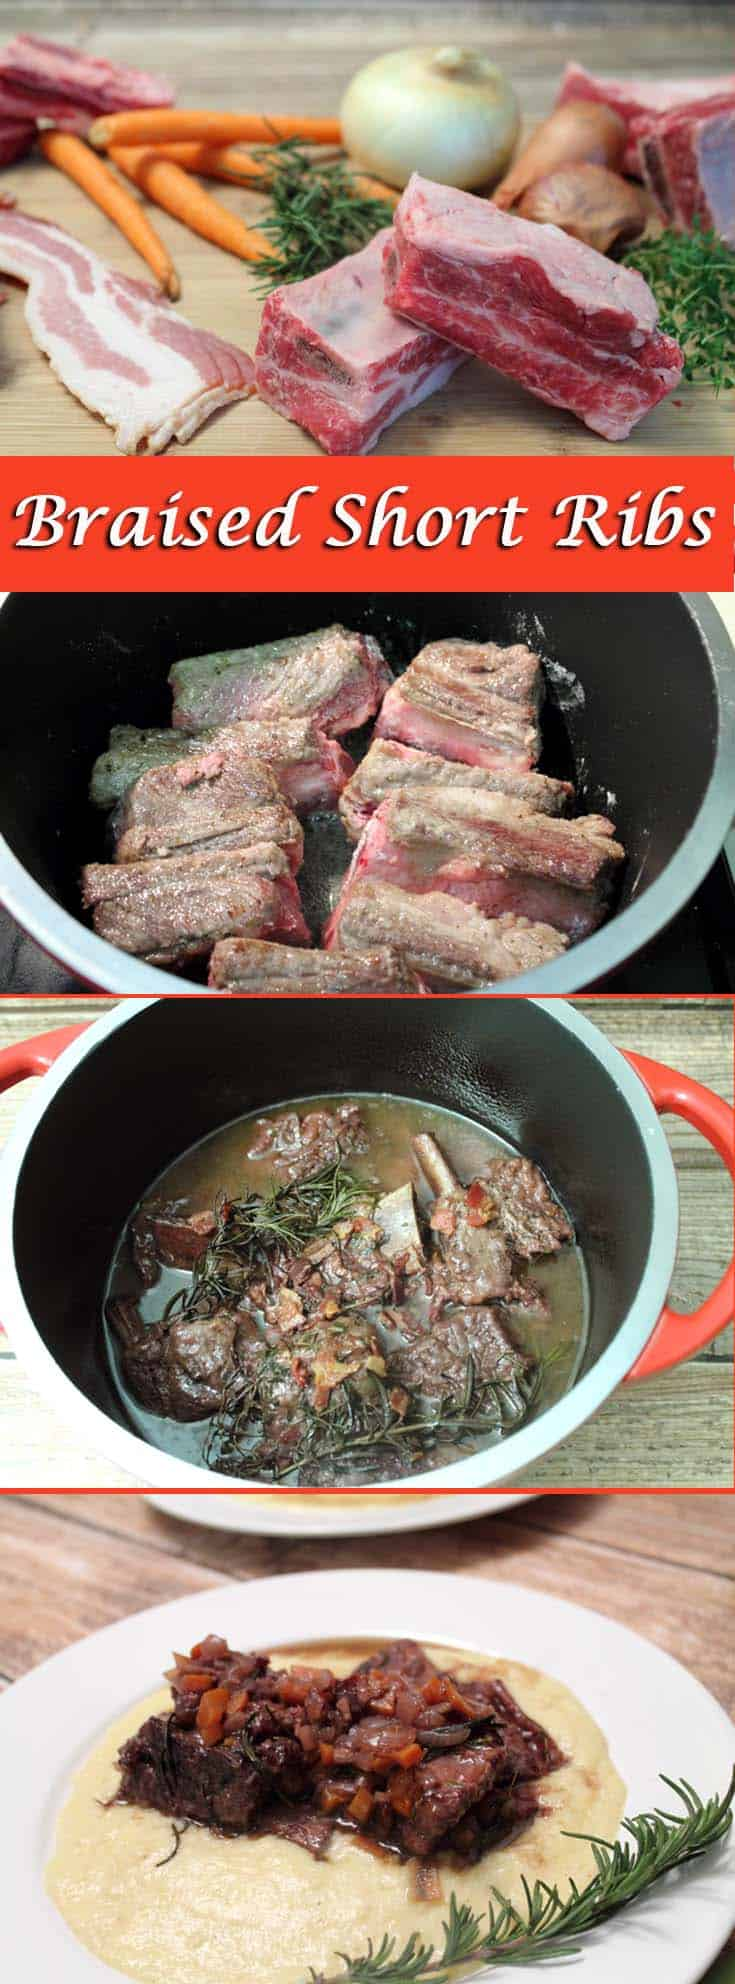 Braised Short Ribs pin2 | 2CookinMamas Fall off the bone deliciousness in an easy Dutch oven recipe. Short ribs cooked in wine and served over smoky cheesy polenta. The perfect dinner for company or everyday!